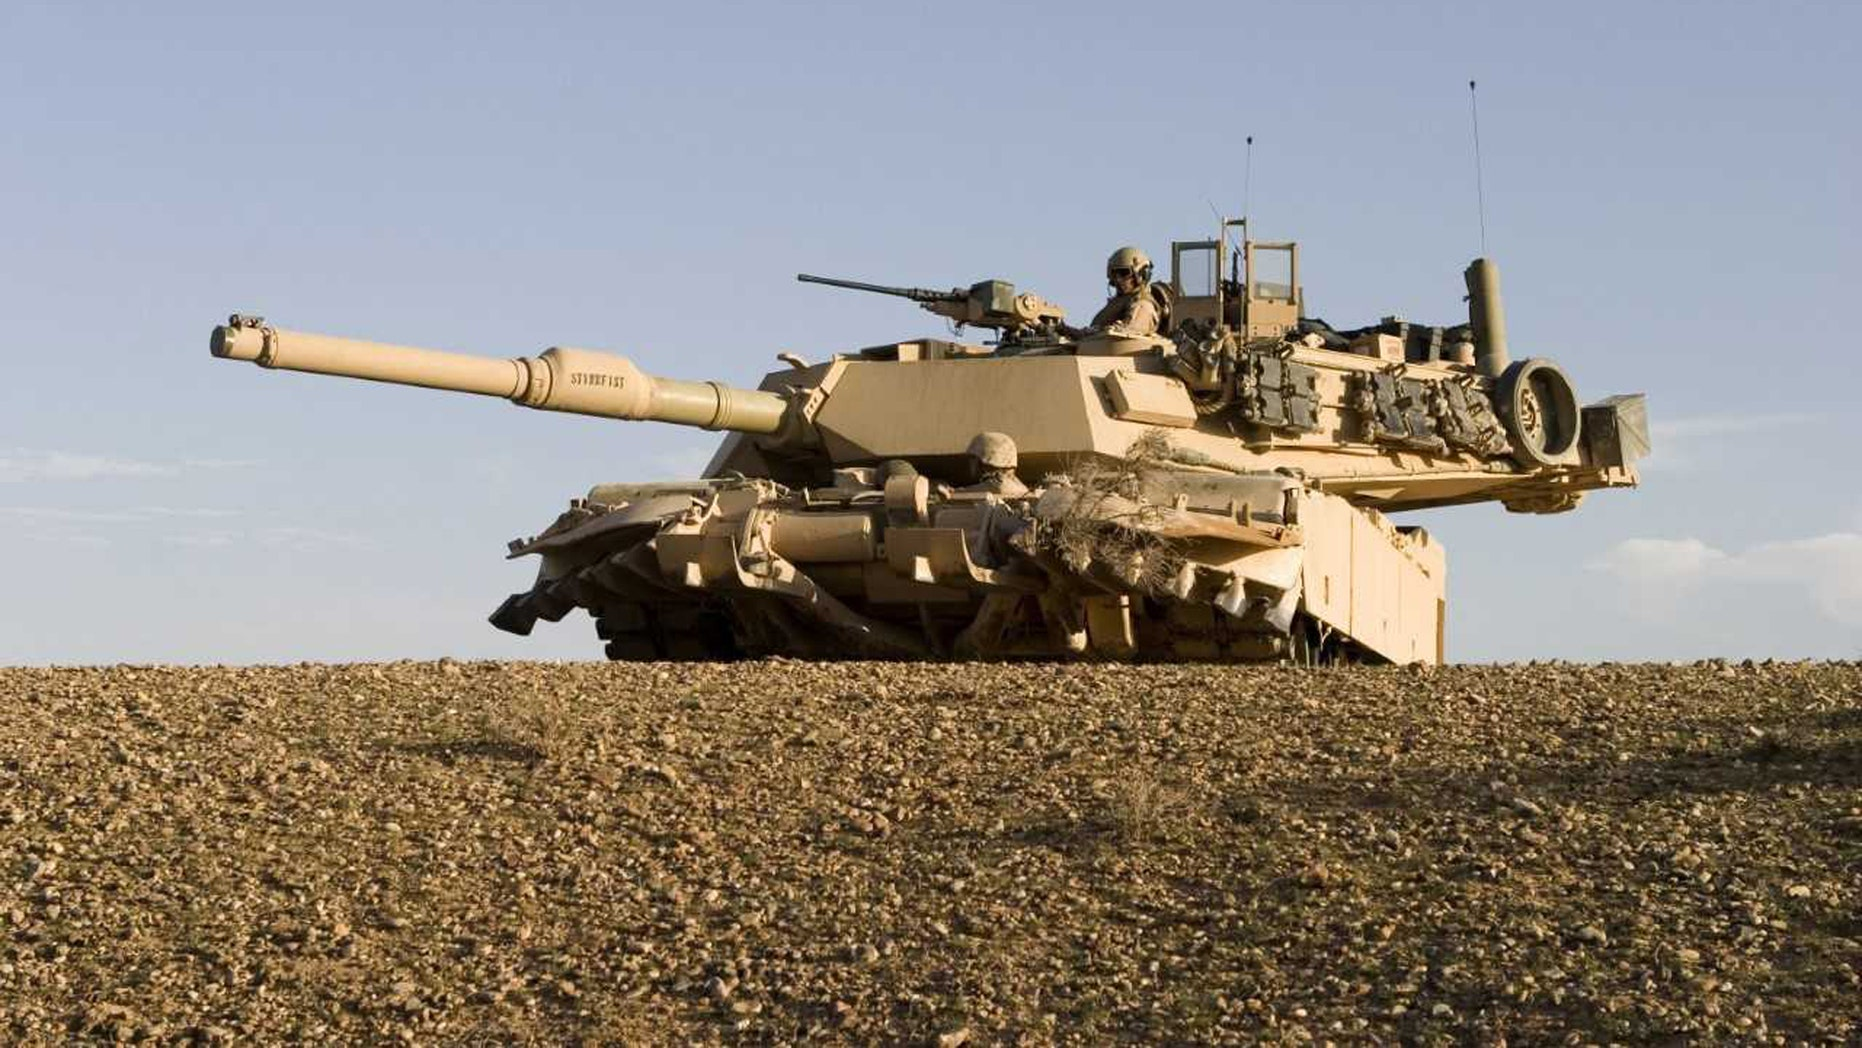 Us army tanks get futuristic shields to destroy incoming threats fox news - Army tank pictures ...